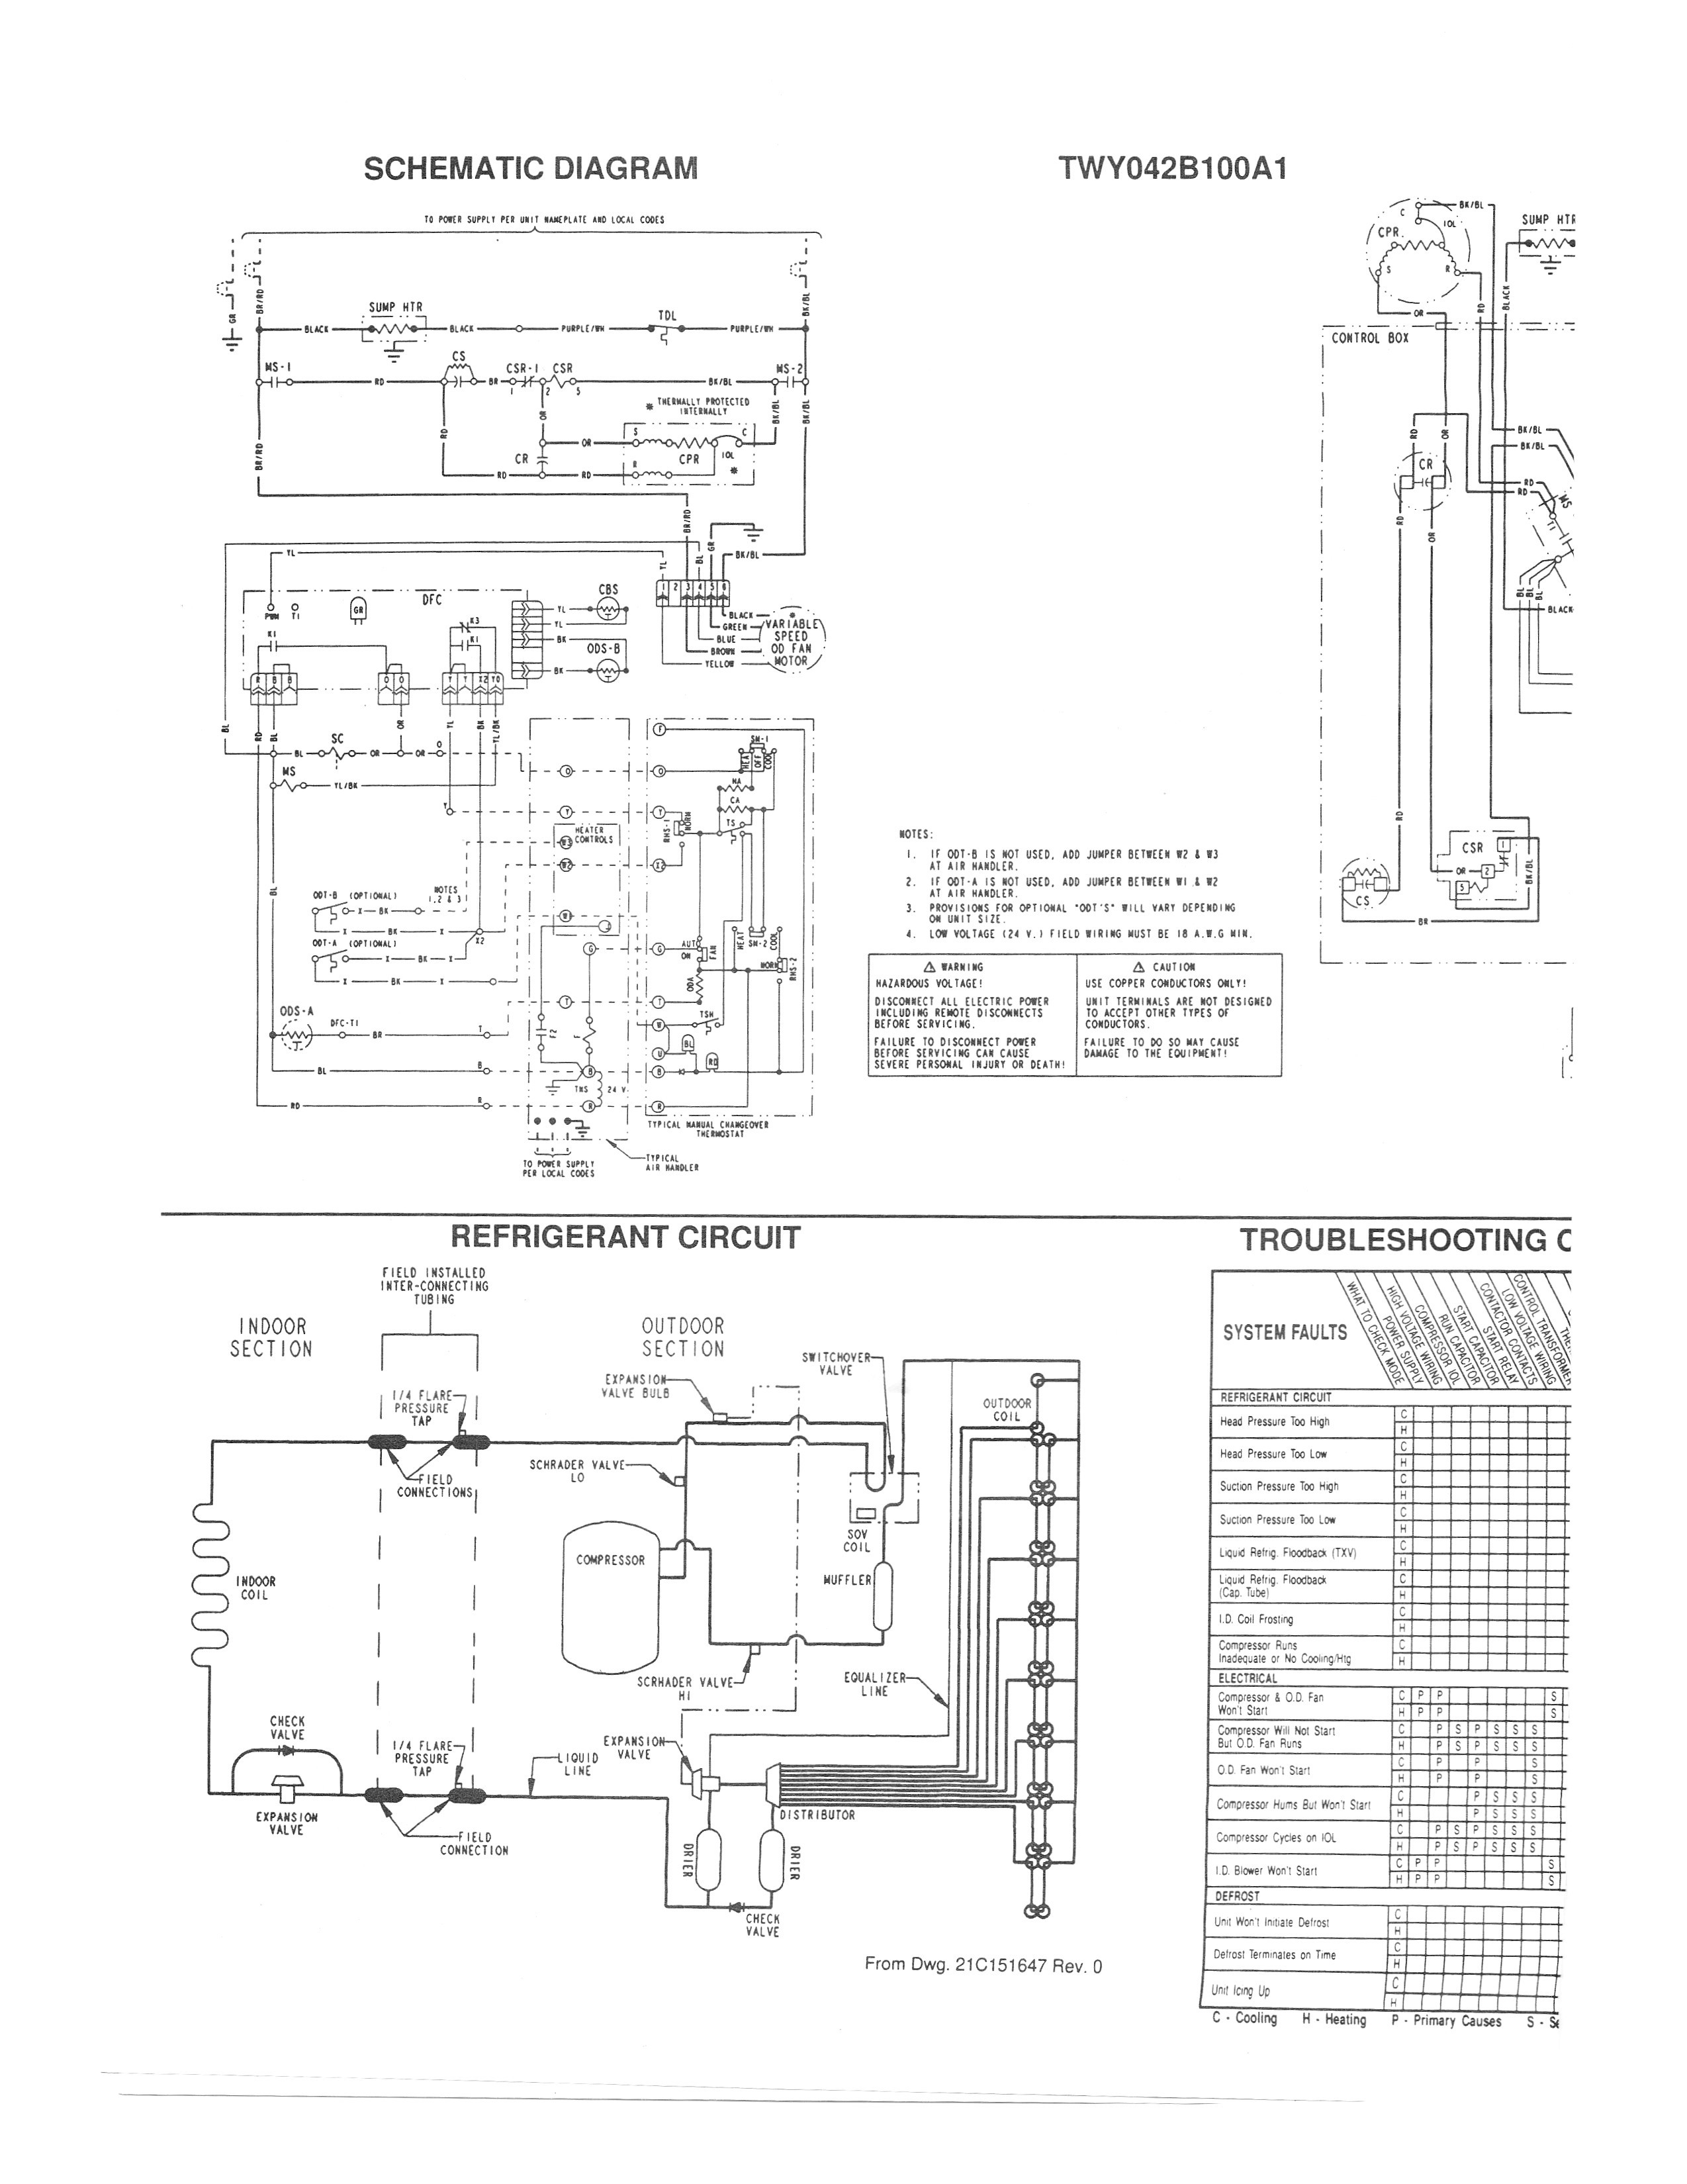 nec wiring diagrams hvac wiring diagram Westinghouse Motor Wiring Diagram nec wiring diagrams hvac wiring diagram datahvac schematic diagrams wiring schematic diagram abb wiring diagrams diagram